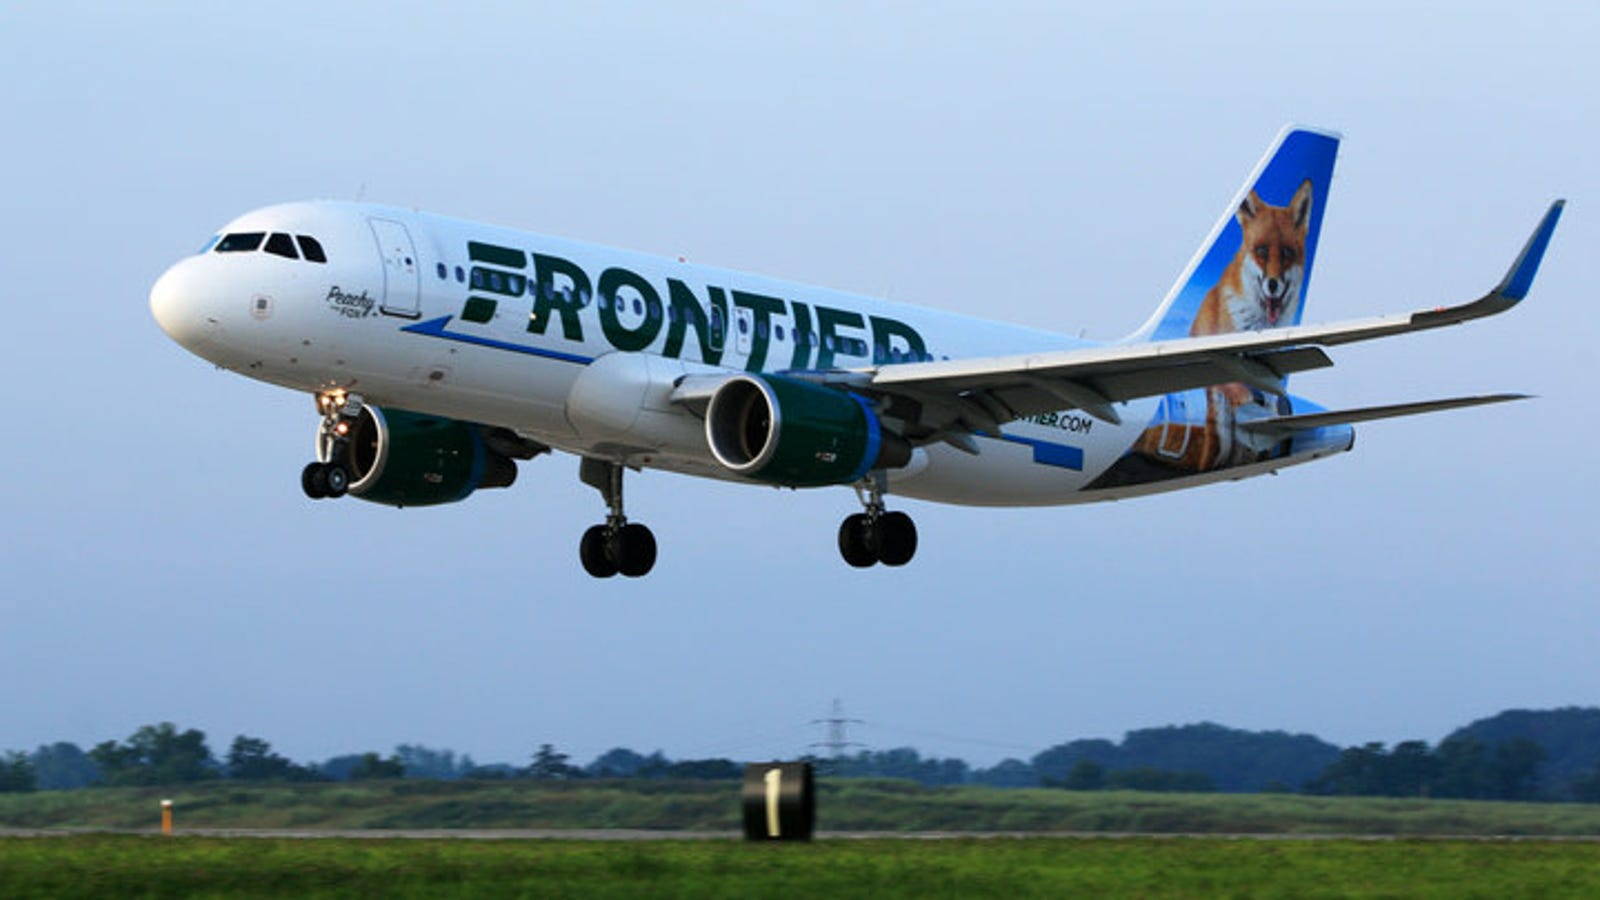 Durham Mom Arrested on Frontier Airlines After Complaining of Bio-hazard on Passenger Seats - The Root